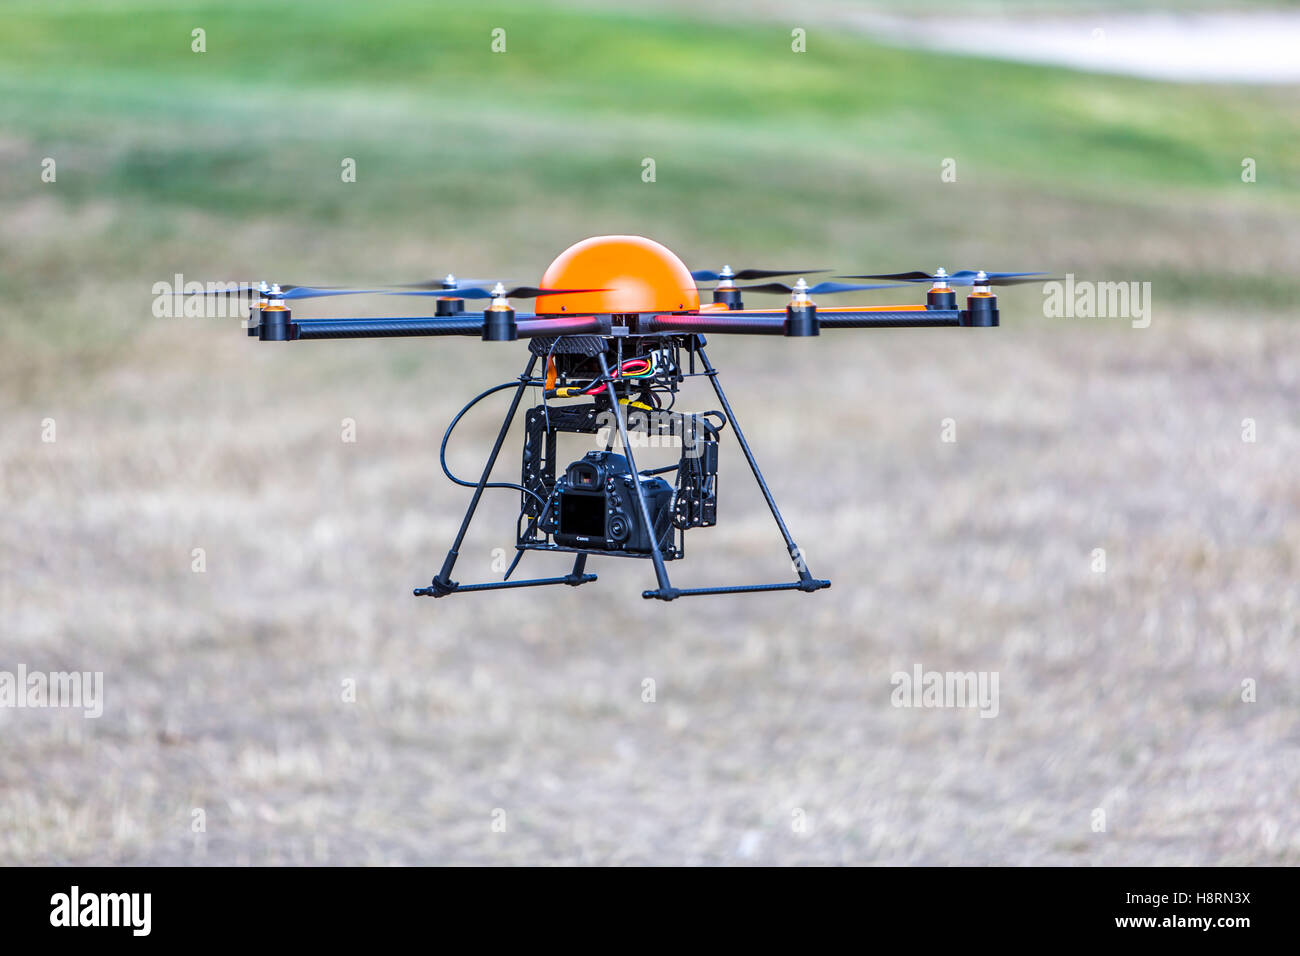 Drone, multi copter, octocopter, with a camera system, professional drone for areal photography, filming, - Stock Image